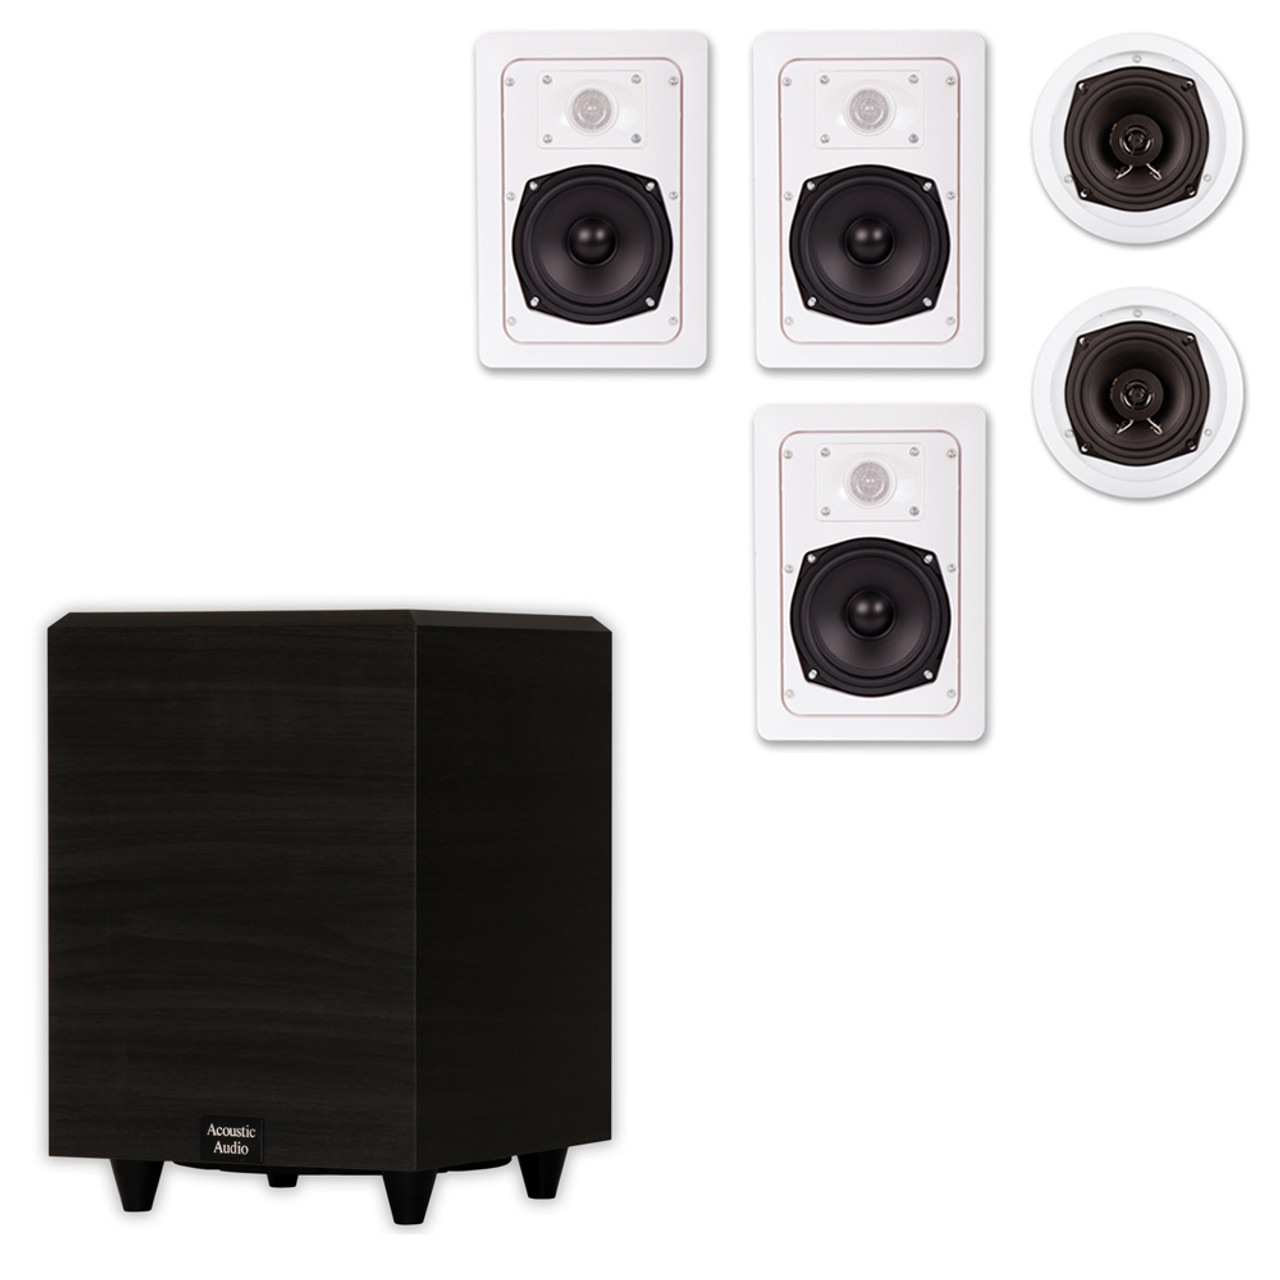 Acoustic Audio Ht 55 In Wall Ceiling 5 1 Home Theater Speakers And 8 Powered Sub Ht 55 Ps8